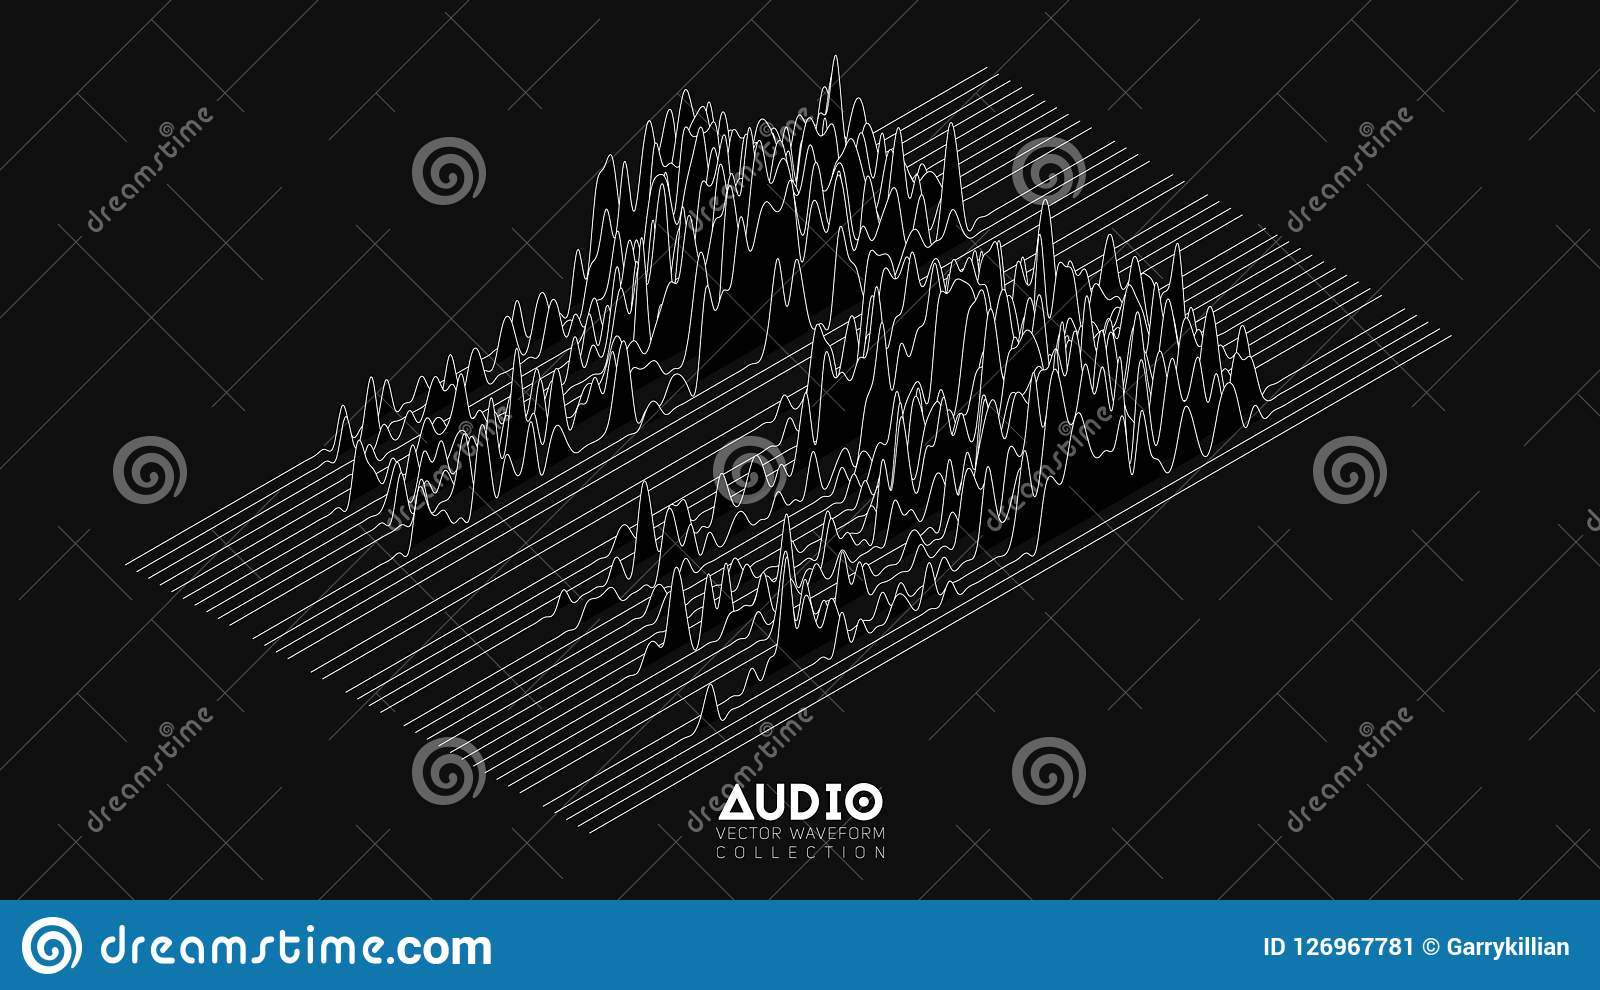 Vector 3d Echo Audio Wavefrom Spectrum  Abstract Music Waves